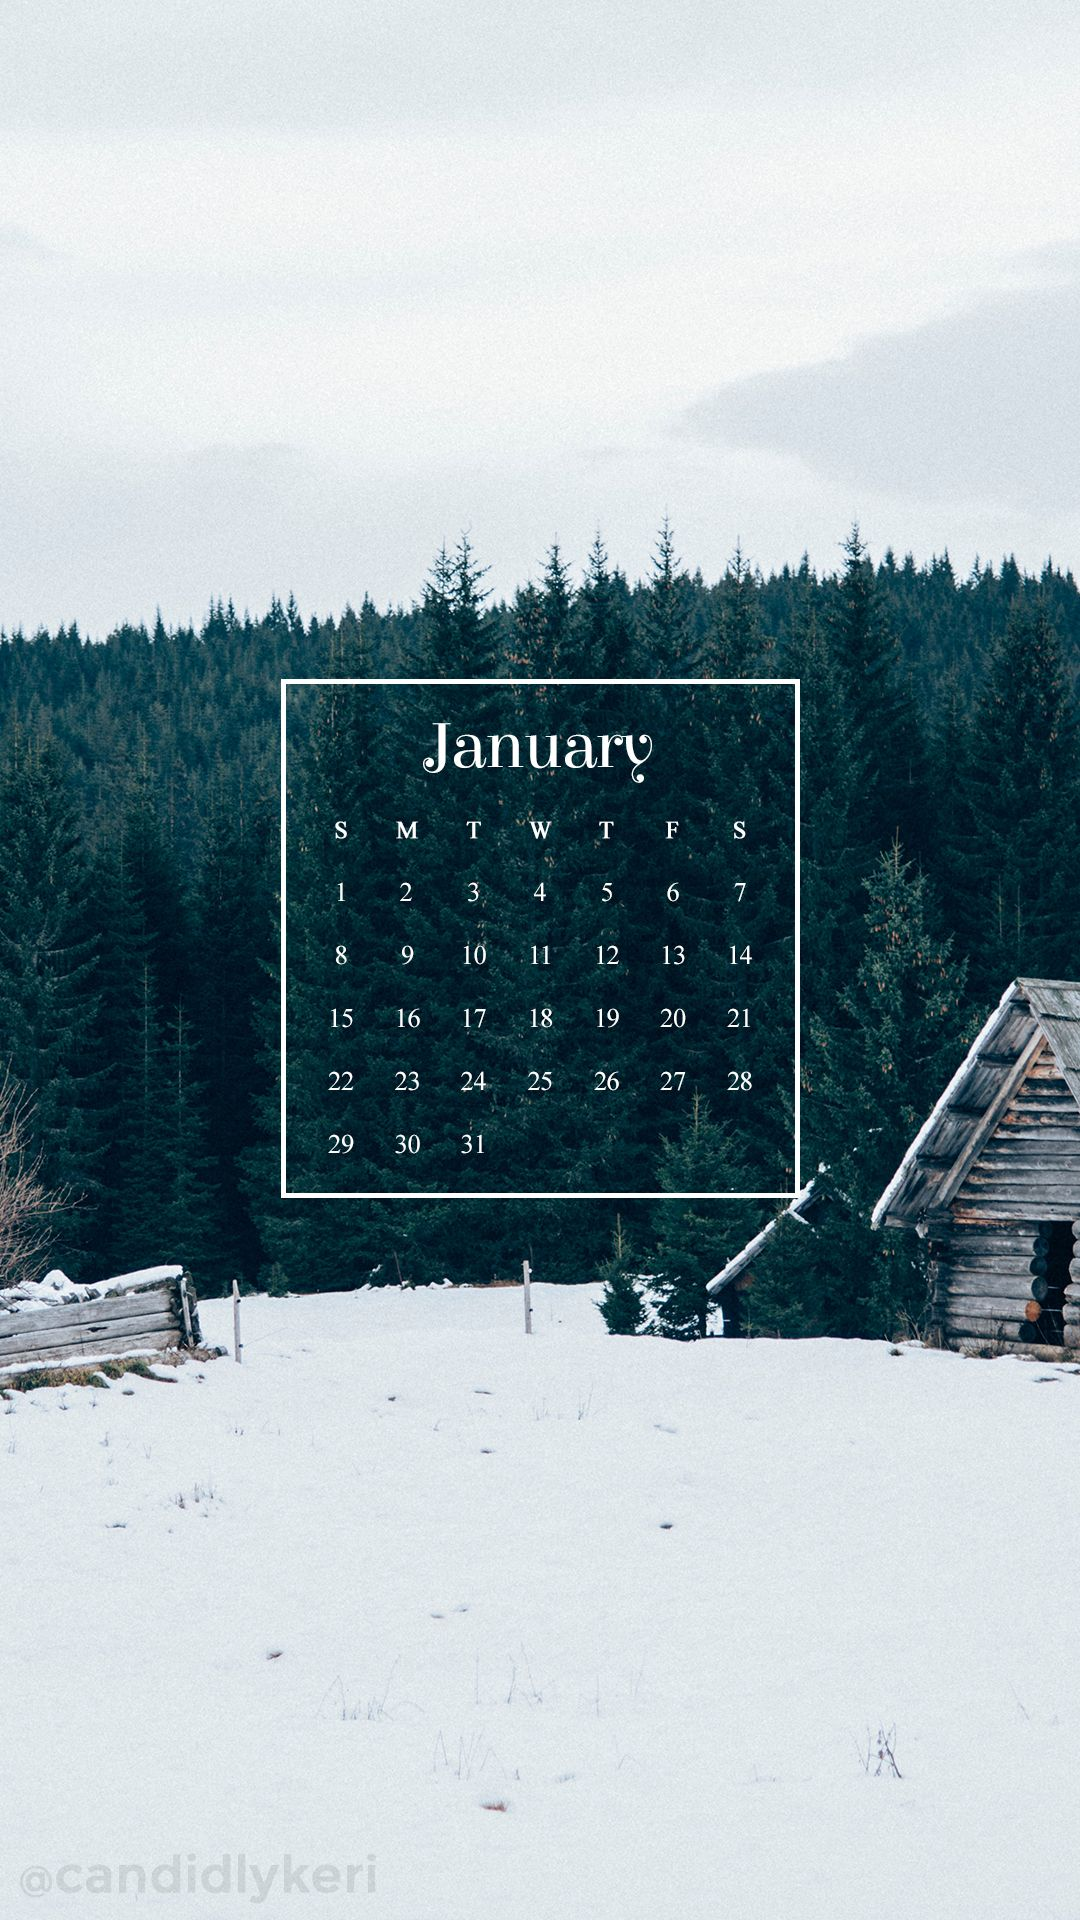 Winter cabin snow forest background January calendar 2017 wallpaper